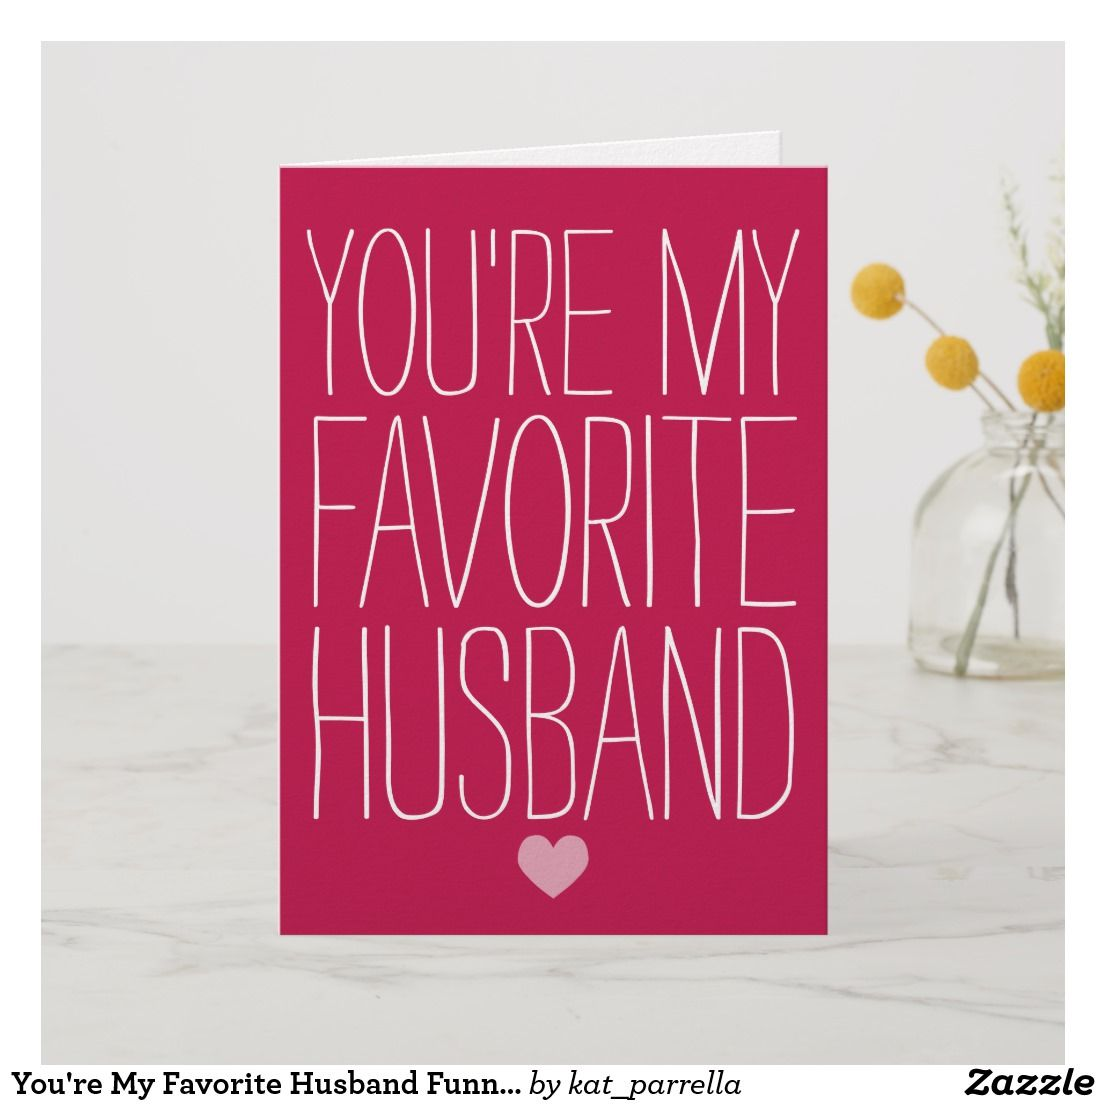 you're my favorite husband funny valentine's day holiday